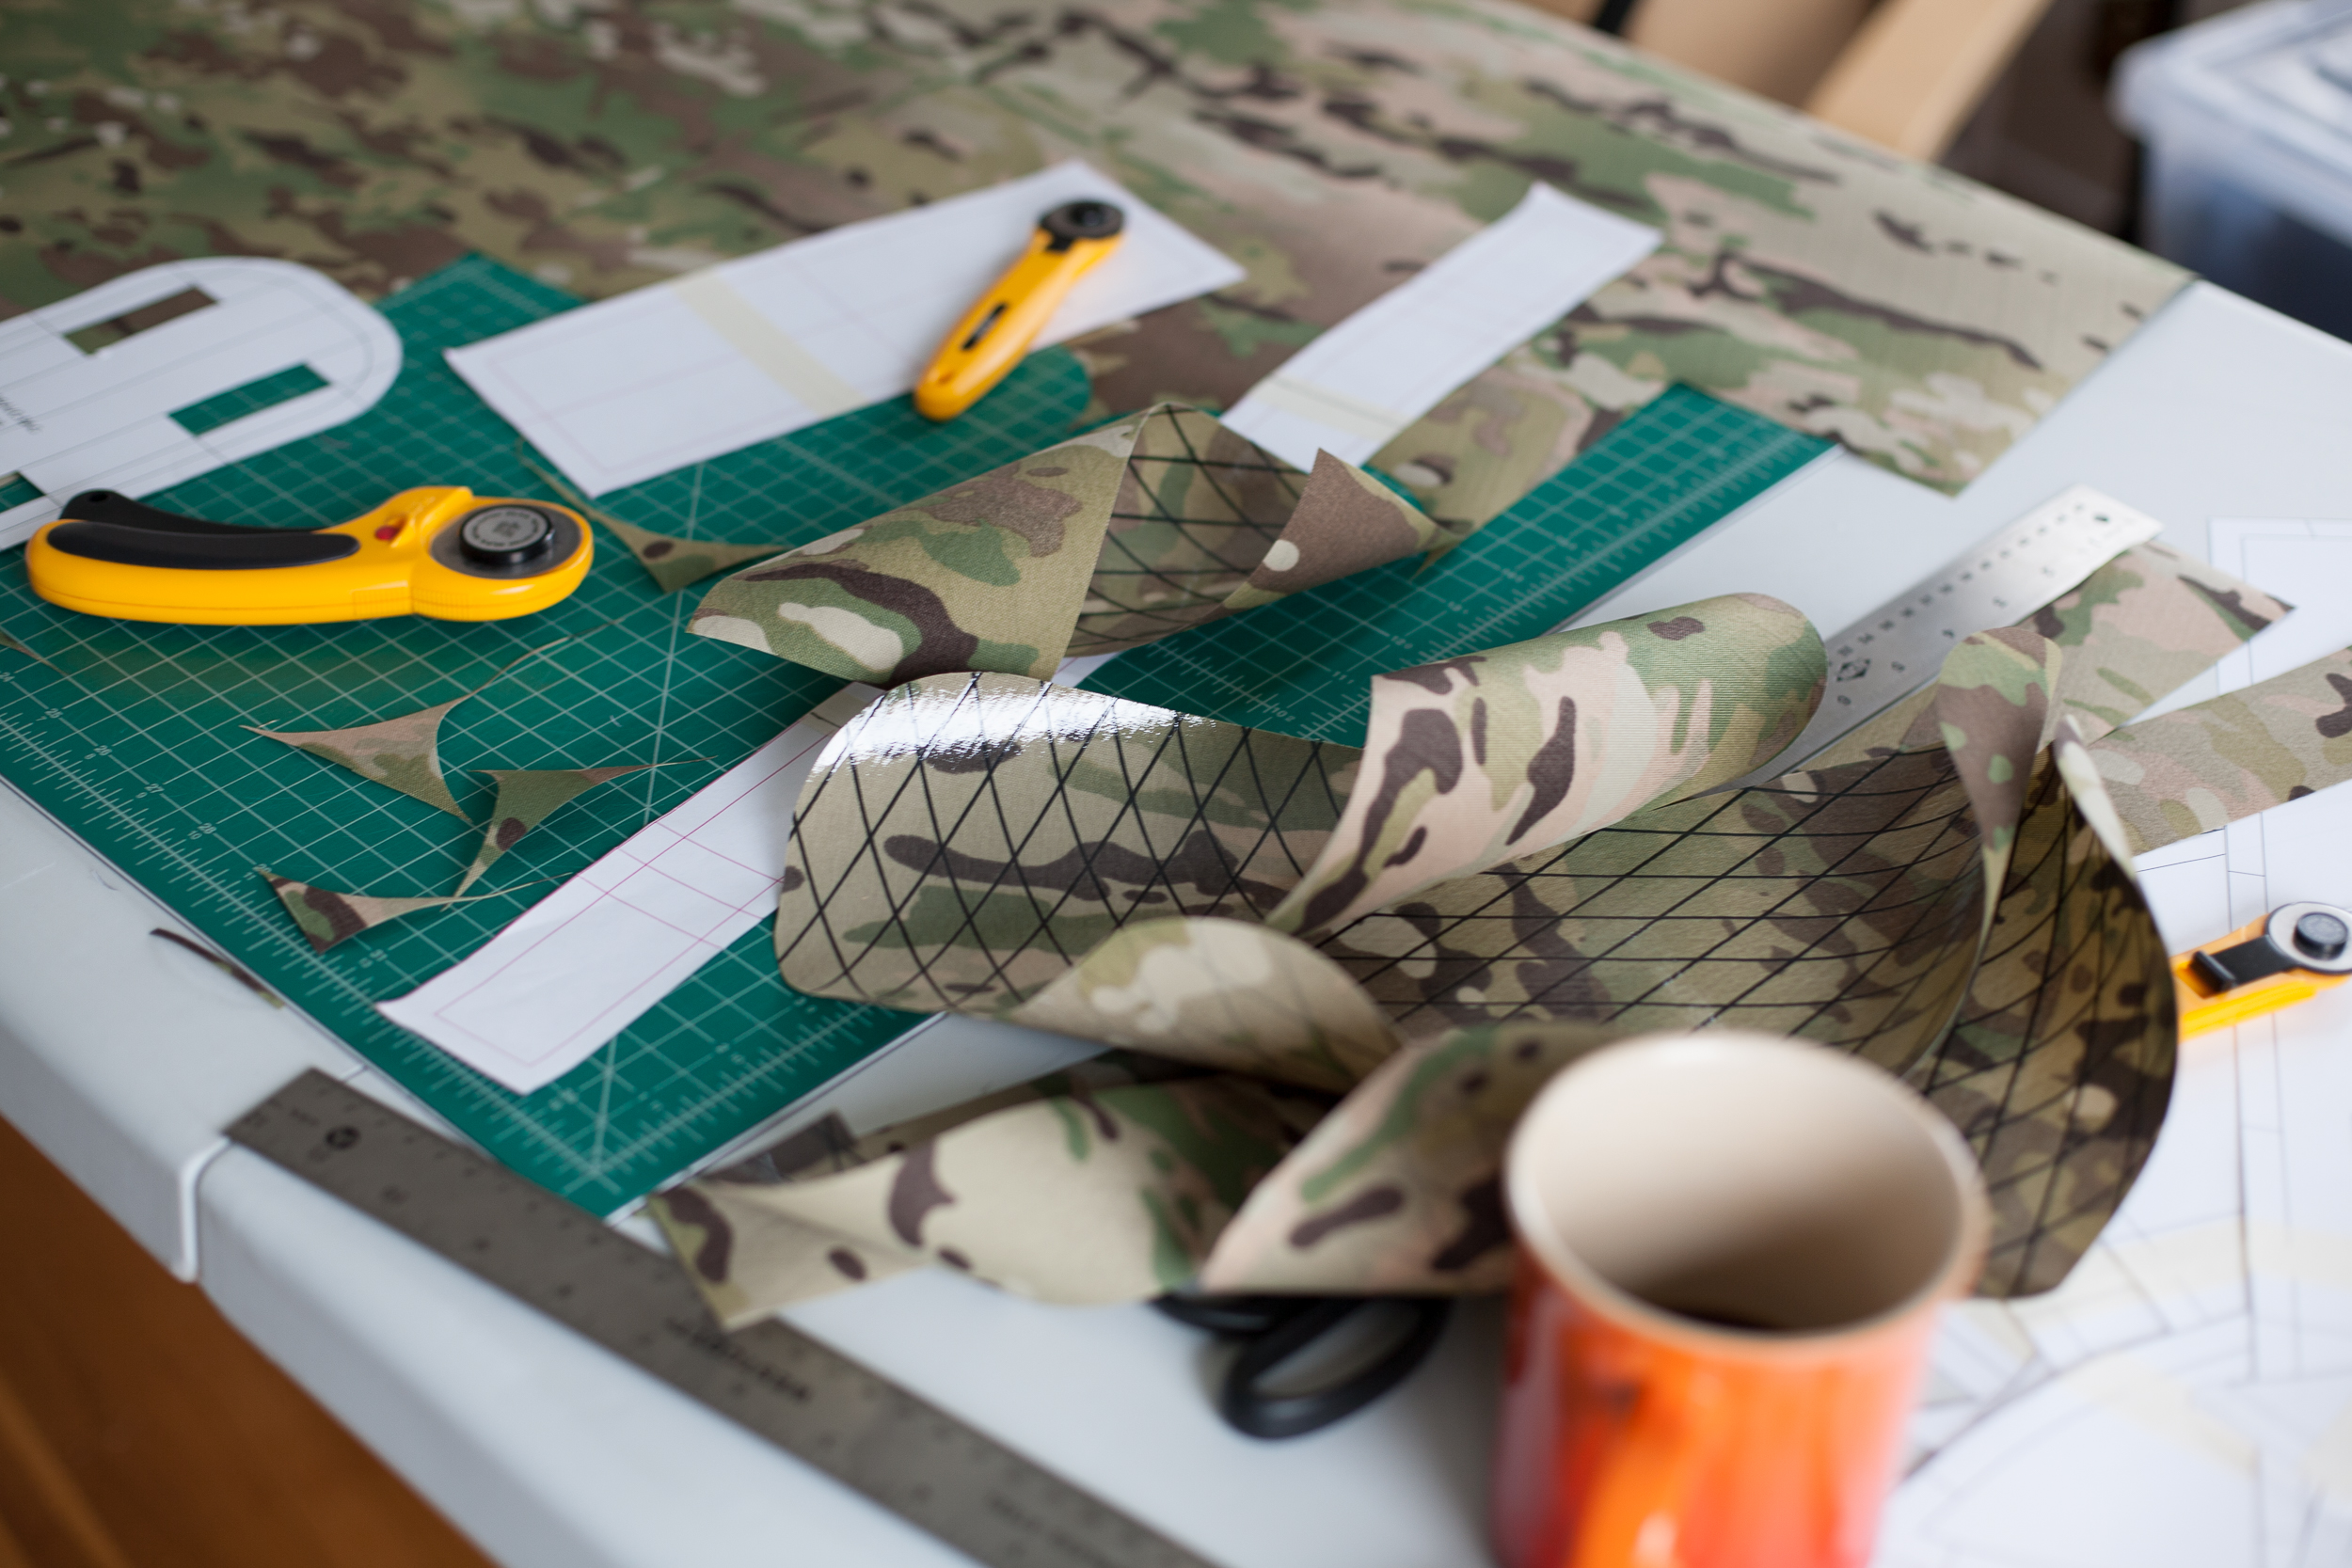 Remote Equipment cutting table multicam fabric samples